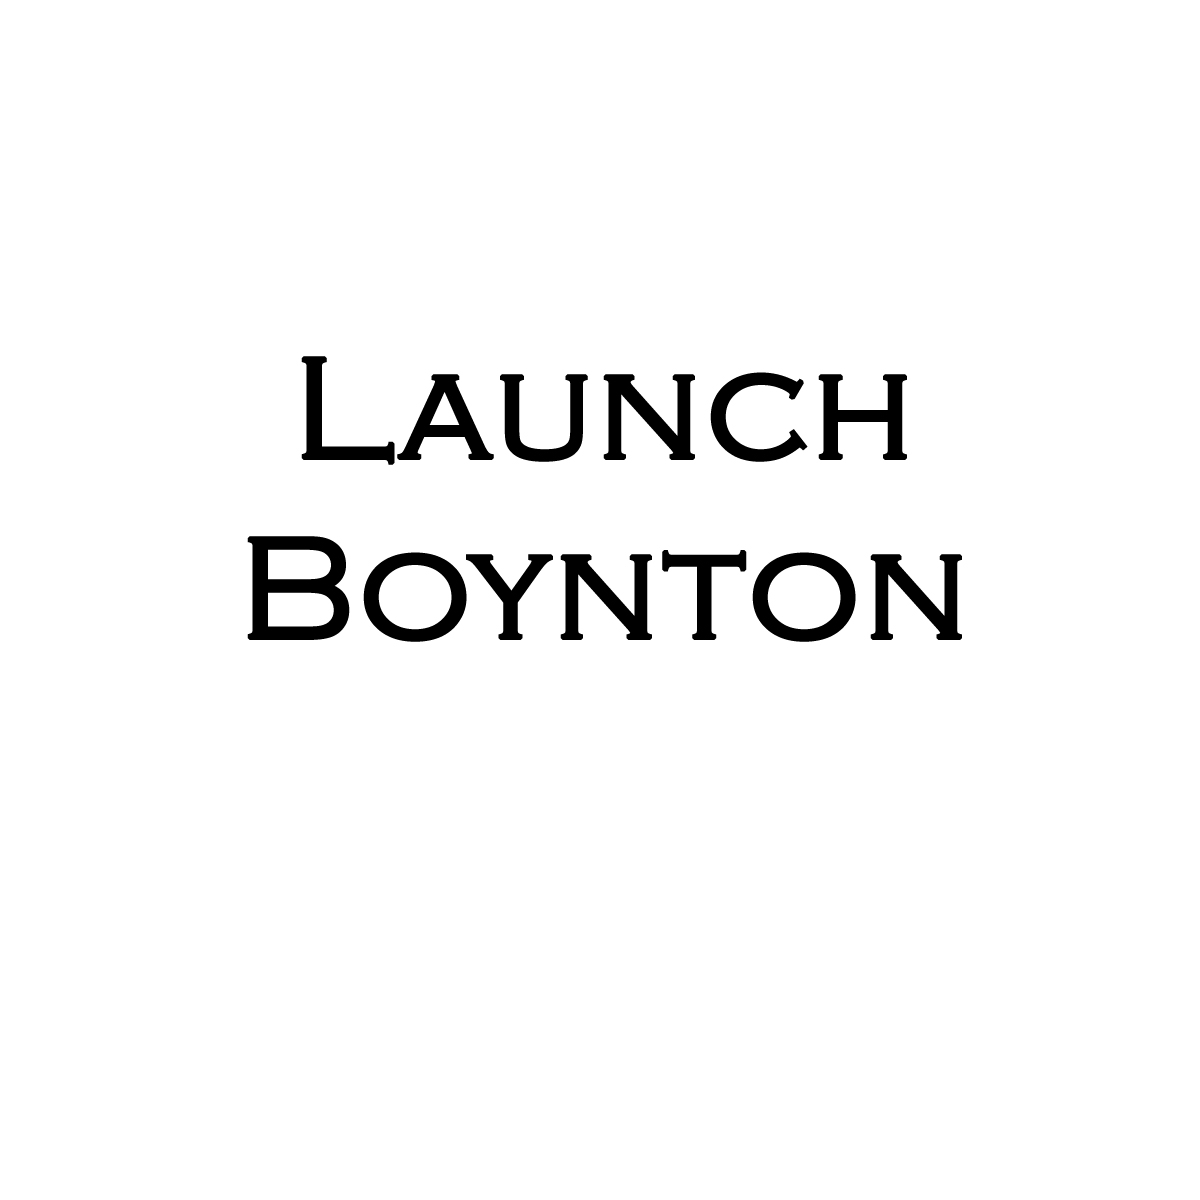 Launch Boynton